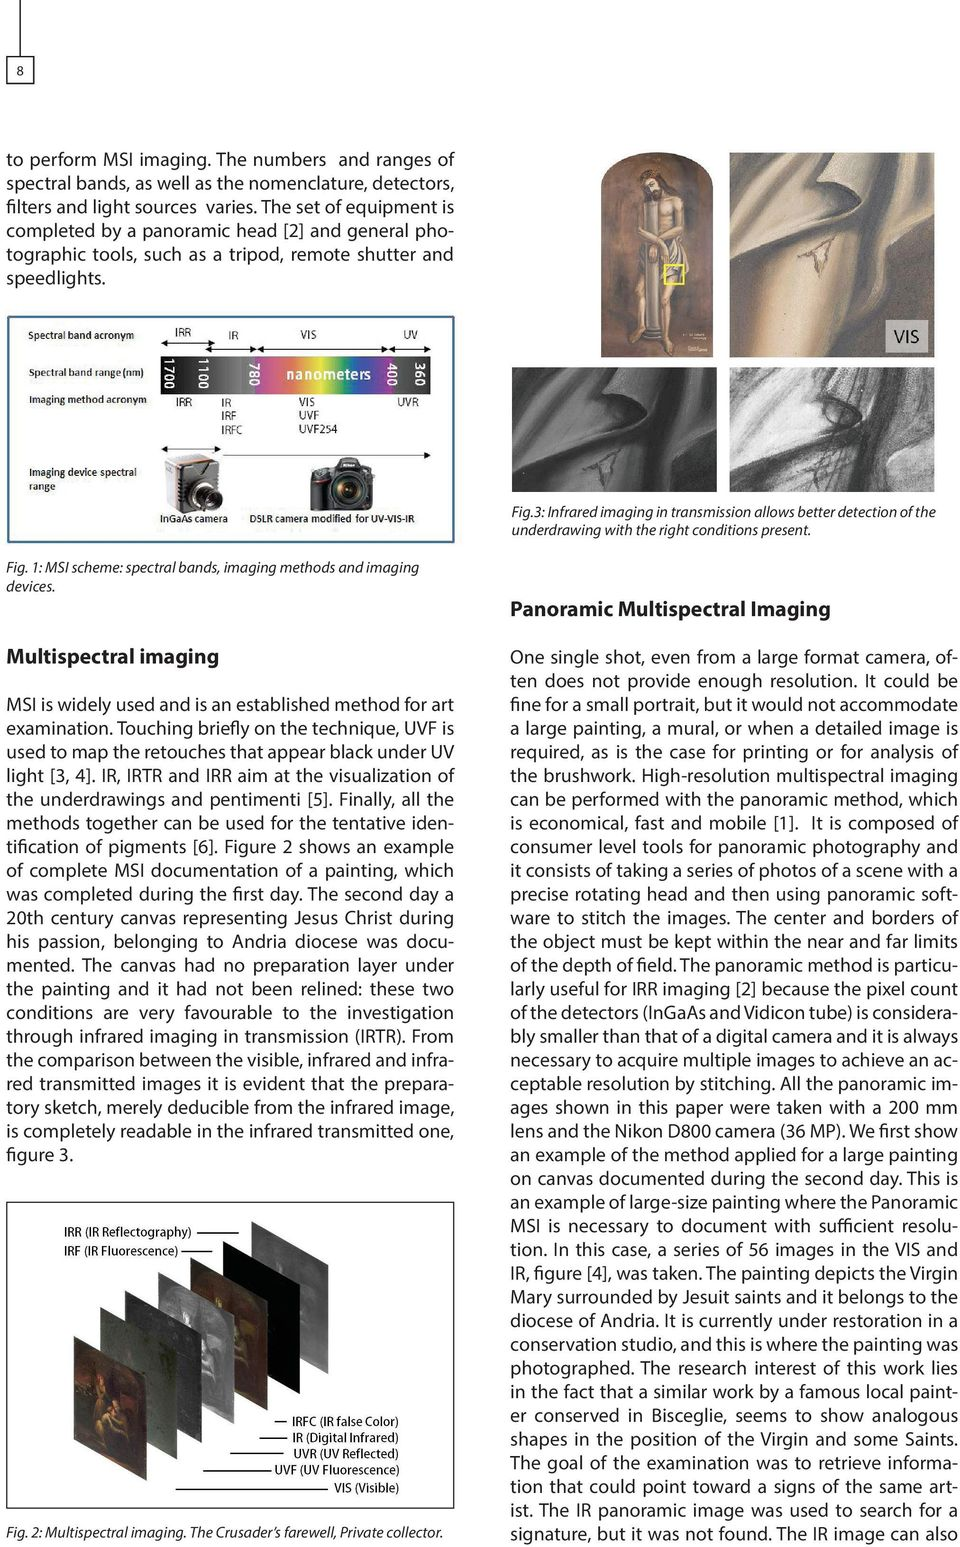 3: Infrared imaging in transmission allows better detection of the underdrawing with the right conditions present. Fig. 1: MSI scheme: spectral bands, imaging methods and imaging devices.